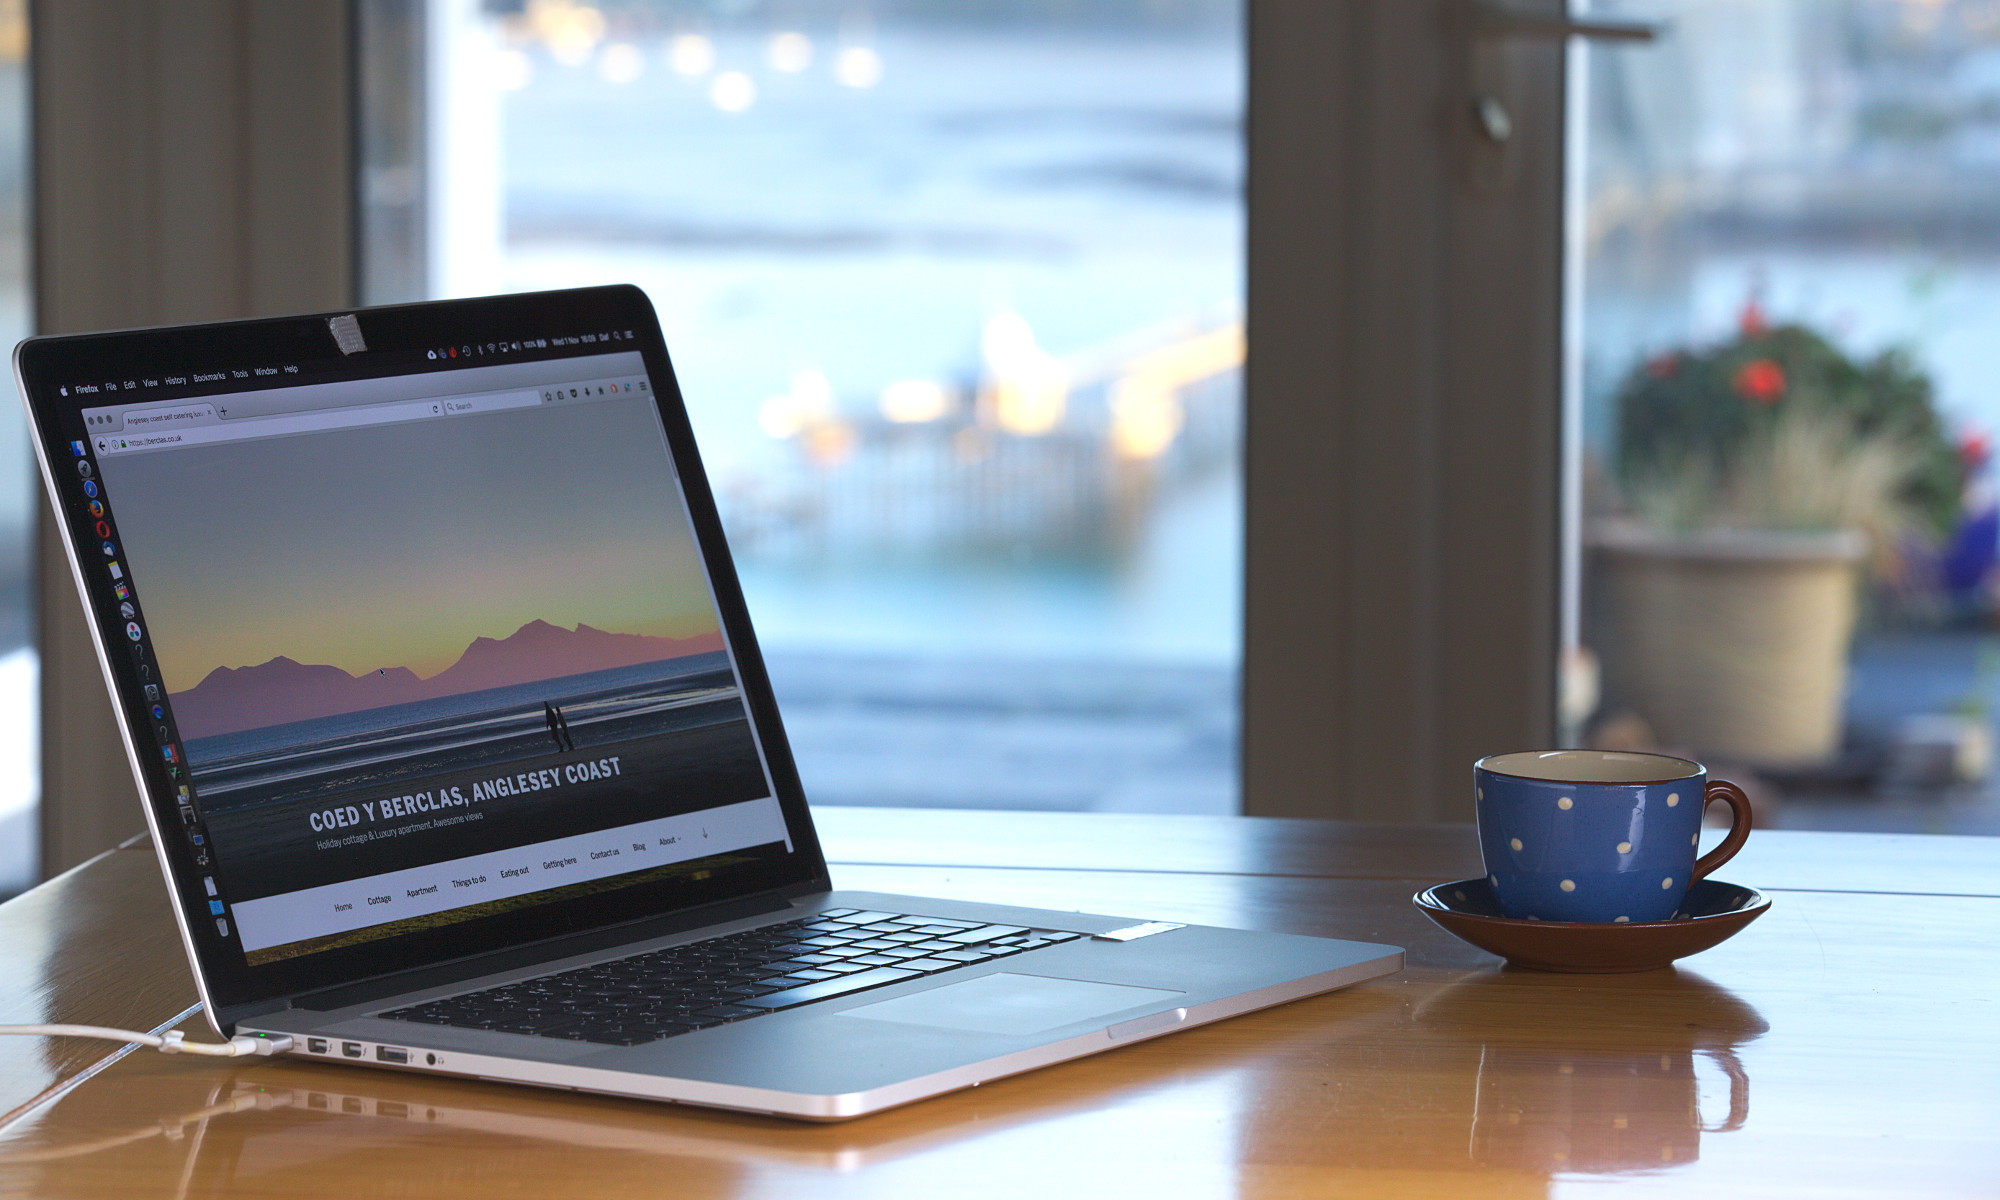 Image of a laptop with Coed y Berclas logo on screen for the contact us page.